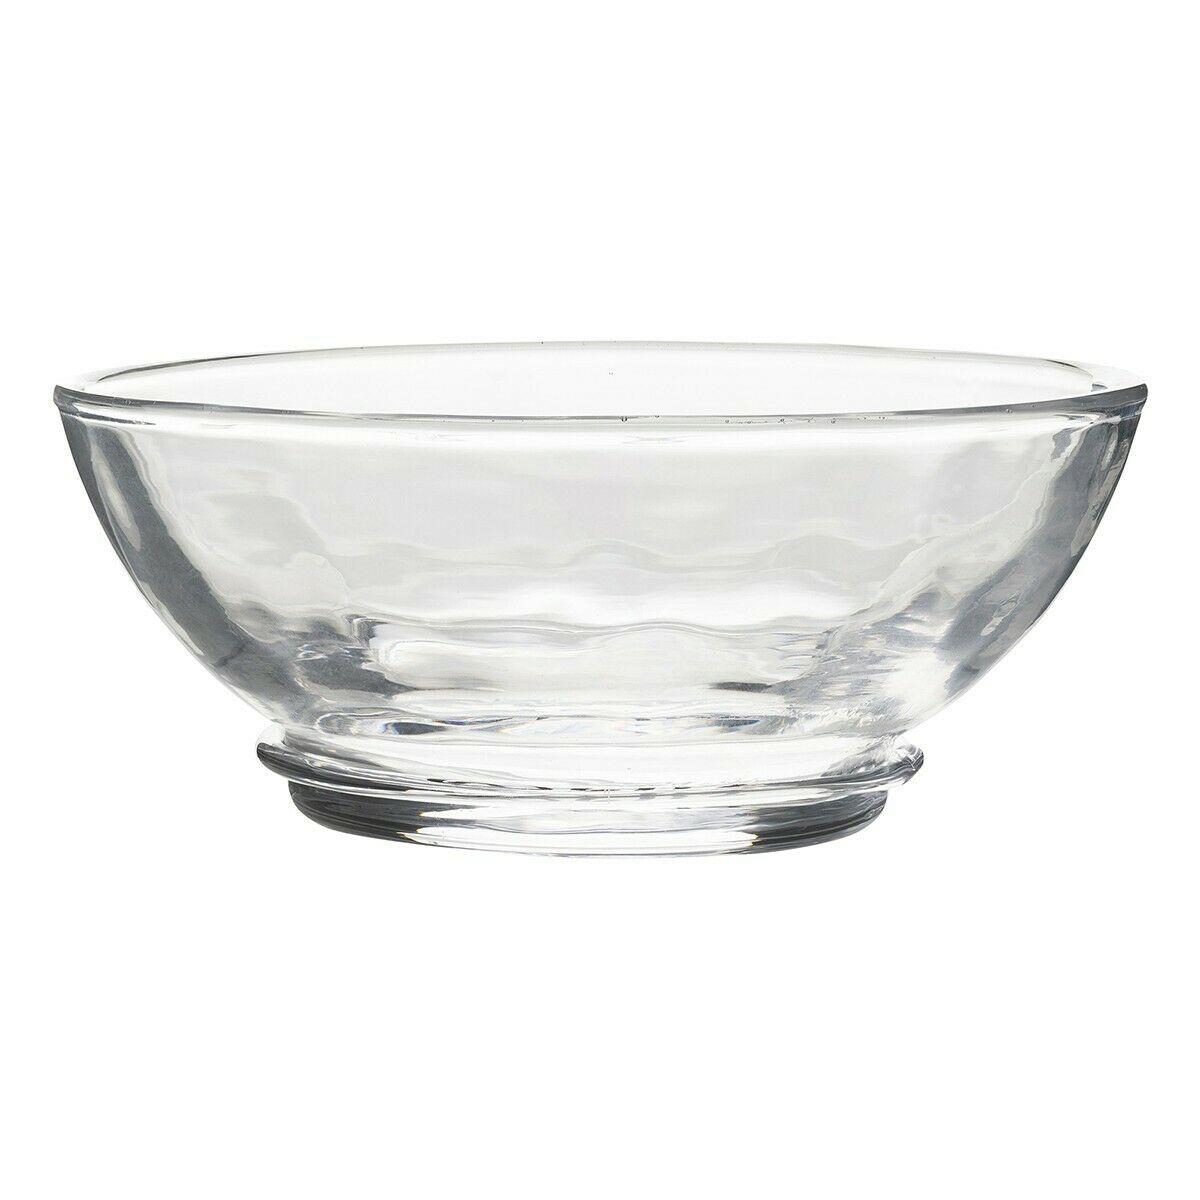 Juliska Carine clair céréales Ice Cream Bowl-Lot de 12